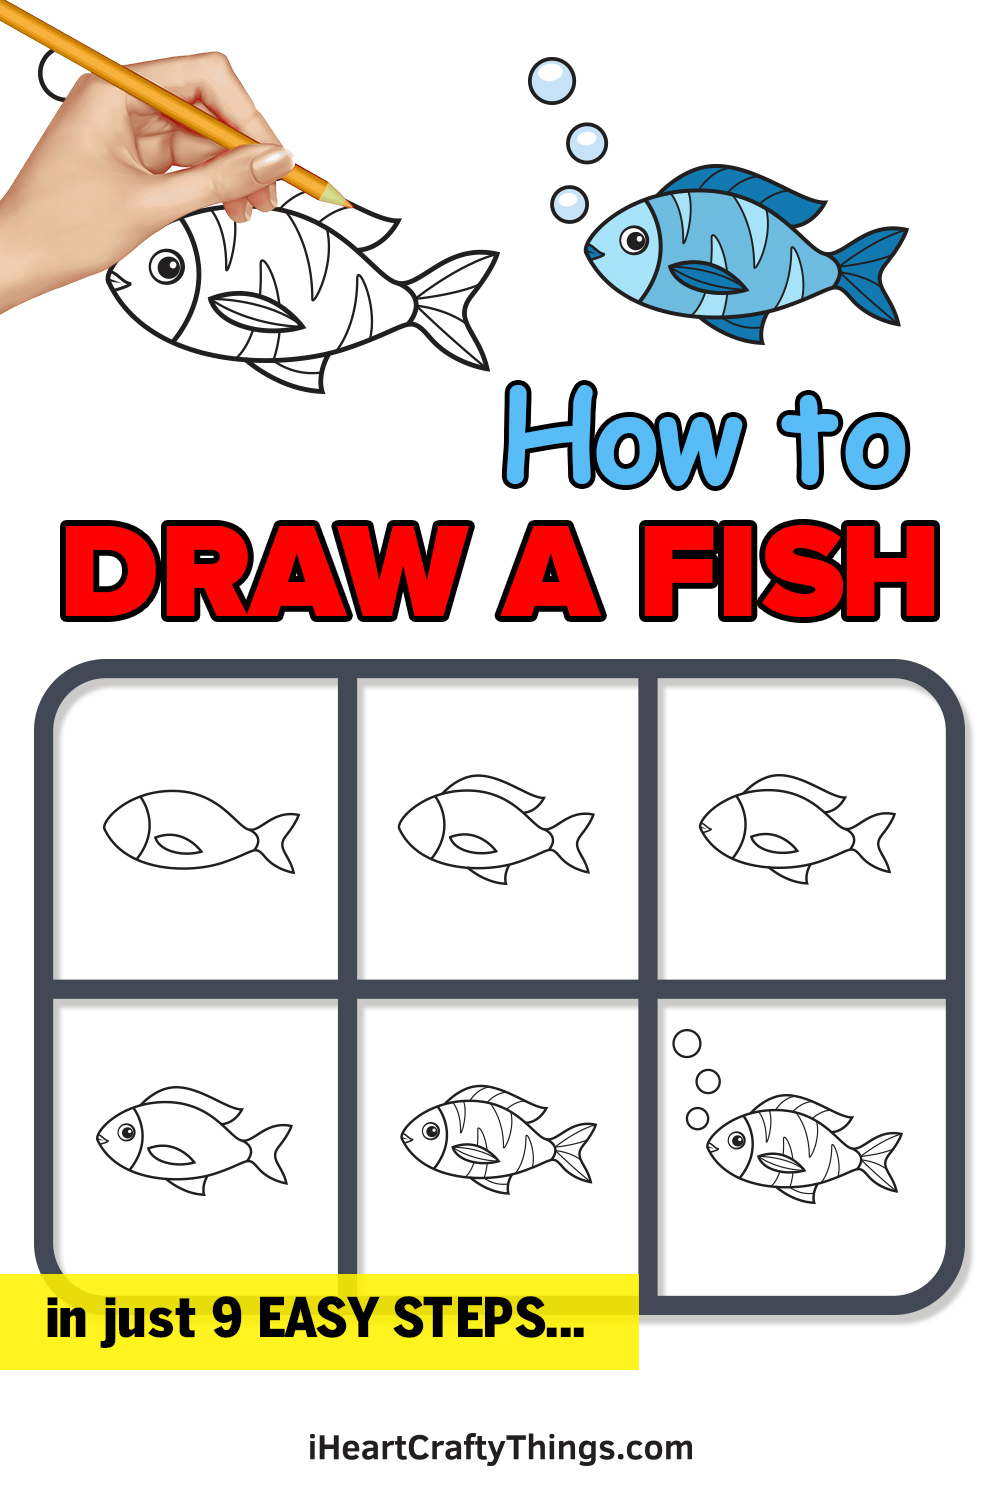 how to draw a fish in 9 easy steps